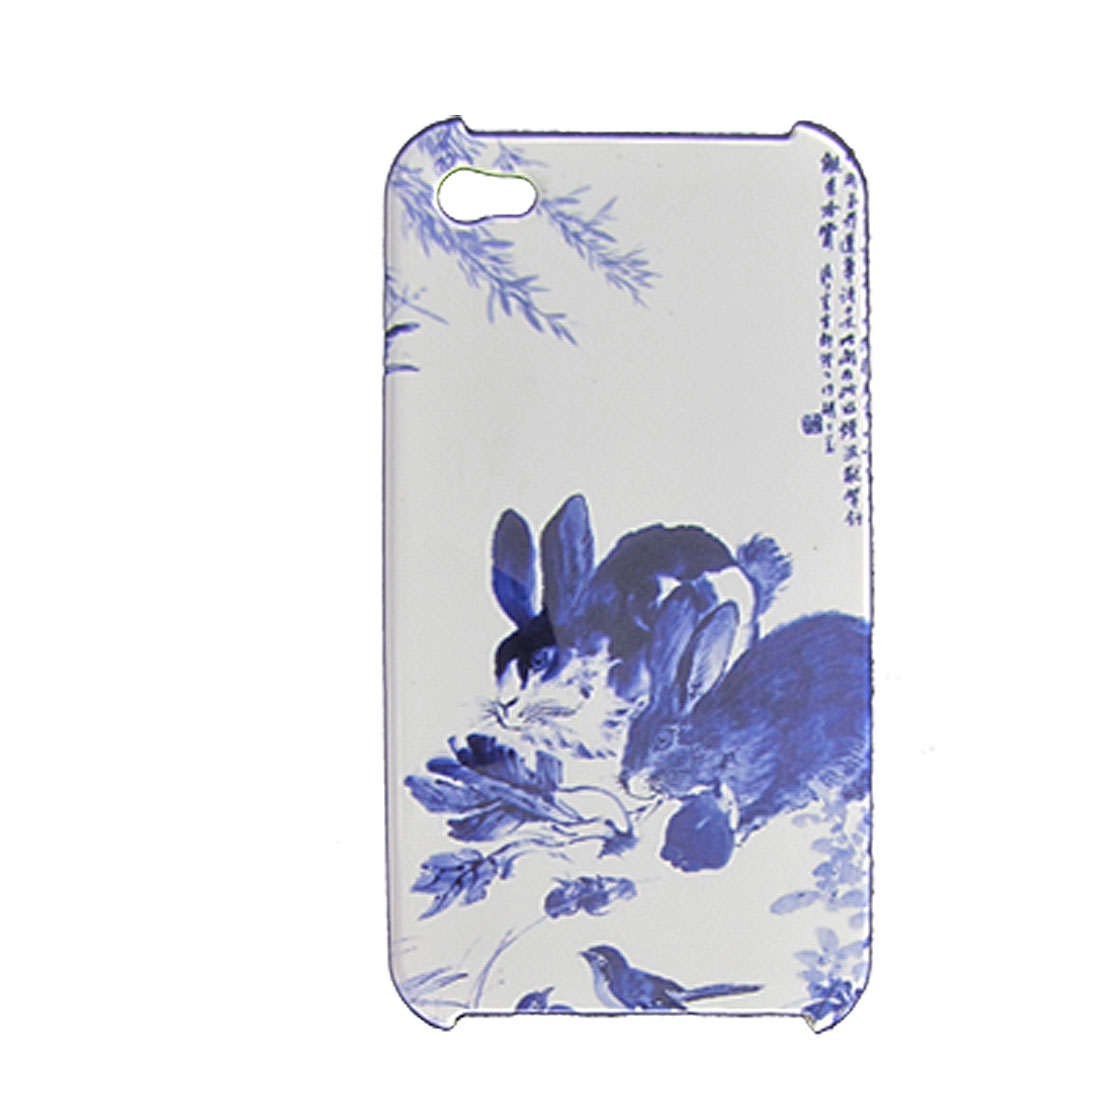 Rabbit Design Plastic Back Case with Screen Film for iPhone 4 4G